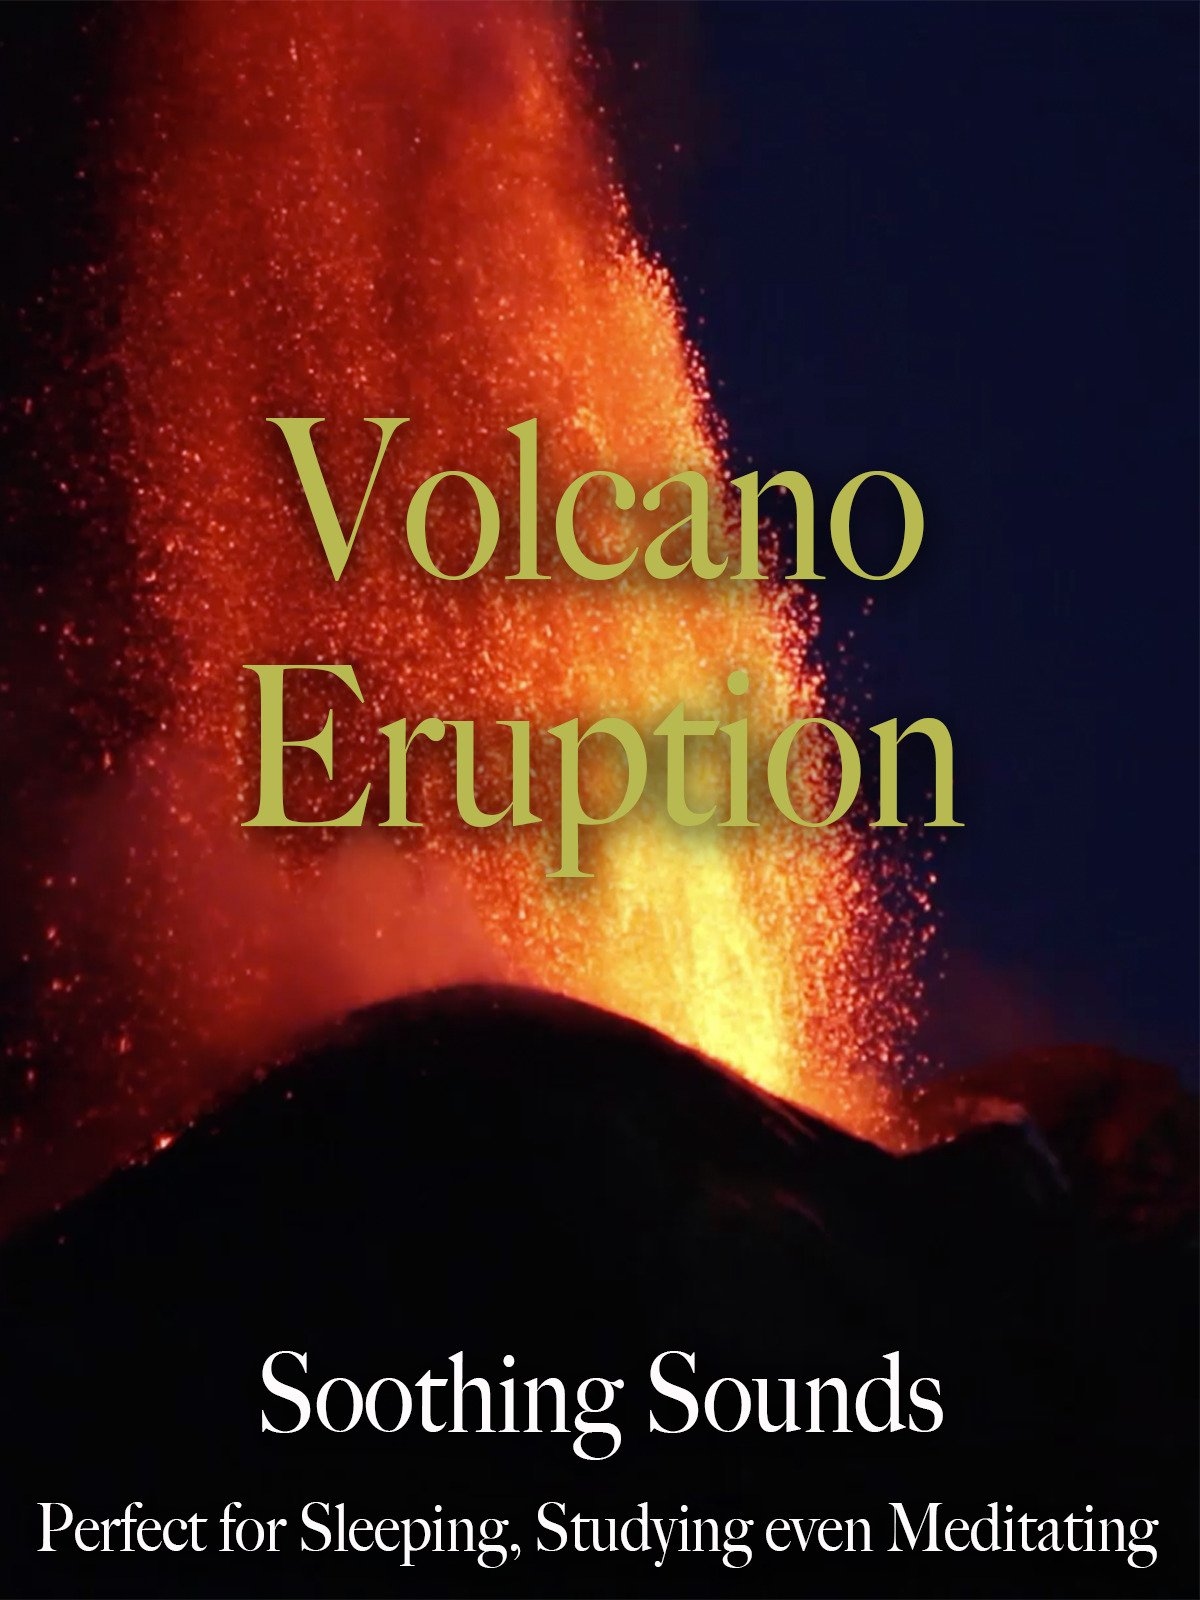 Volcano Eruption Soothing Sounds Perfect for Sleeping, Relaxing, even Meditating